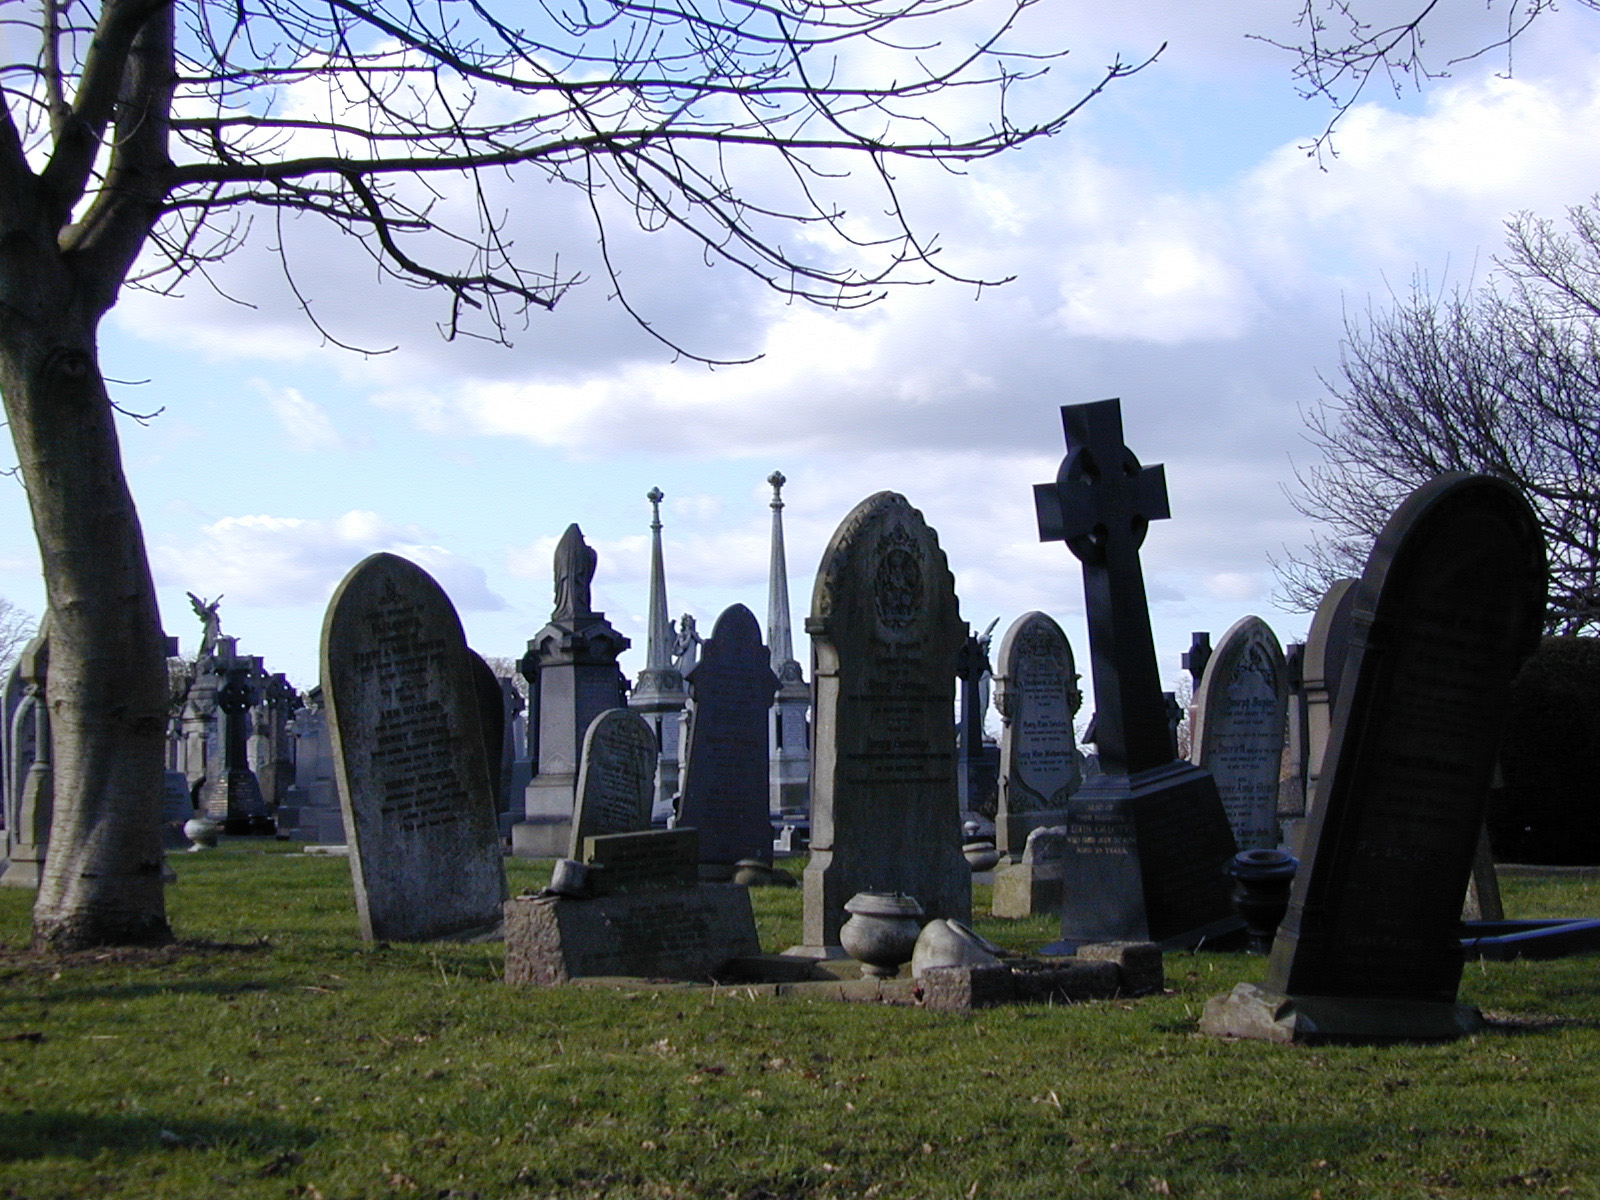 Free photo: Headstones - Buried, Cemetery, Cross - Free Download - Jooinn